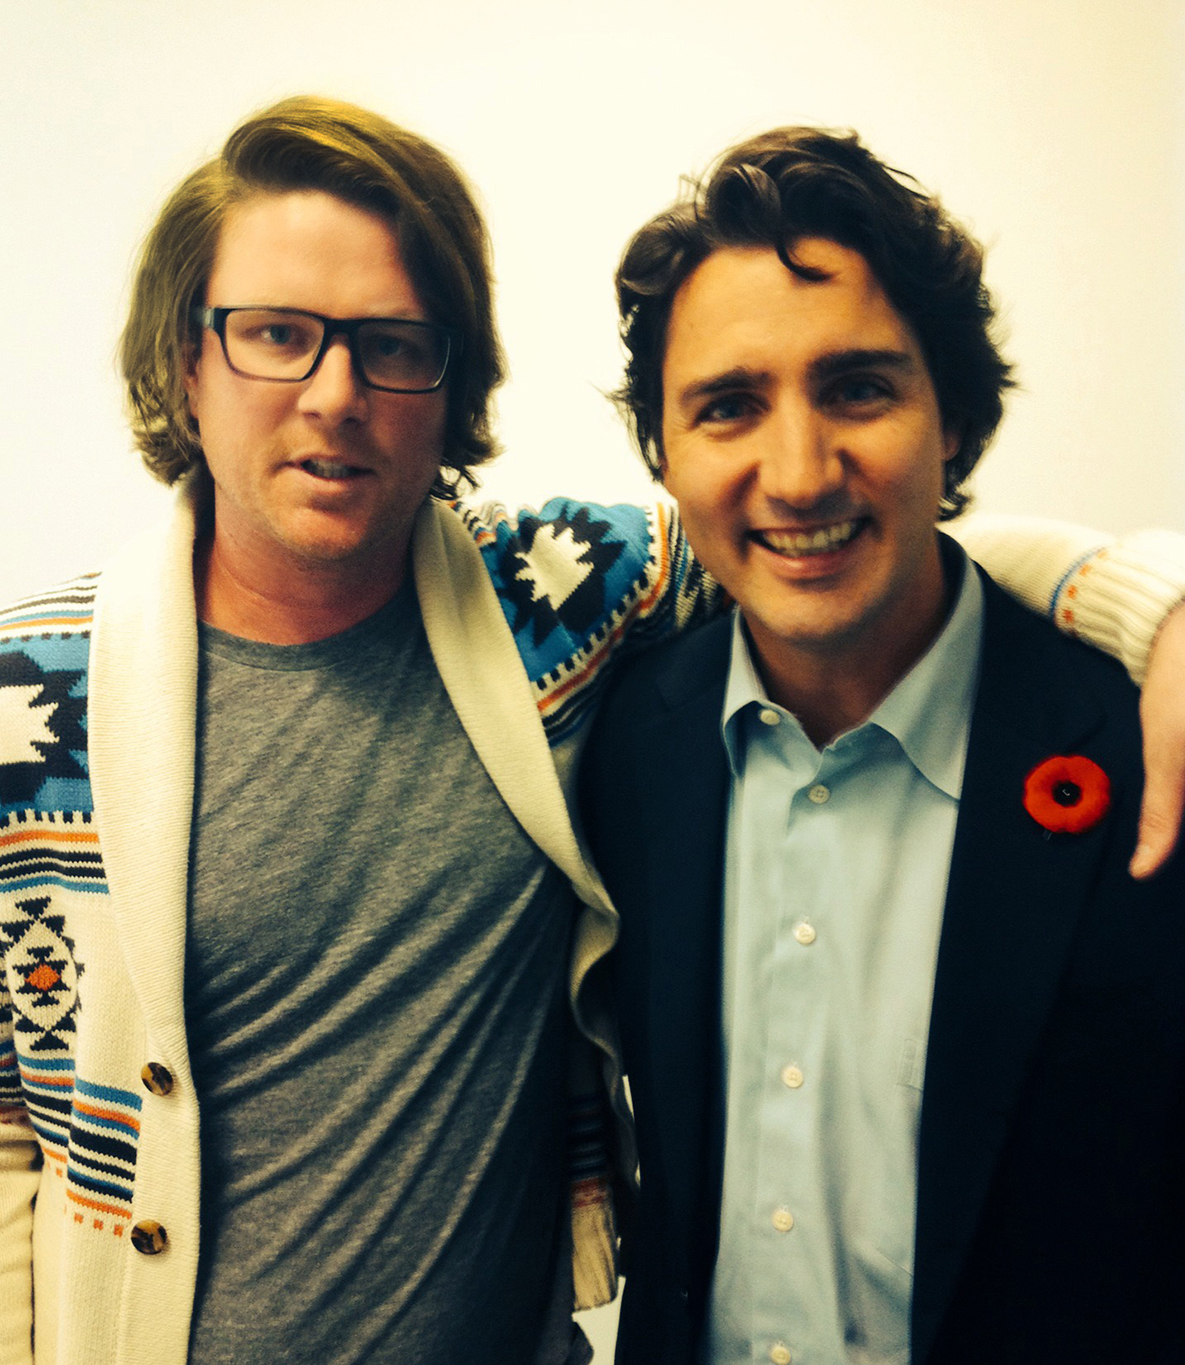 Interviewing Justin Trudeau for Informal Education.